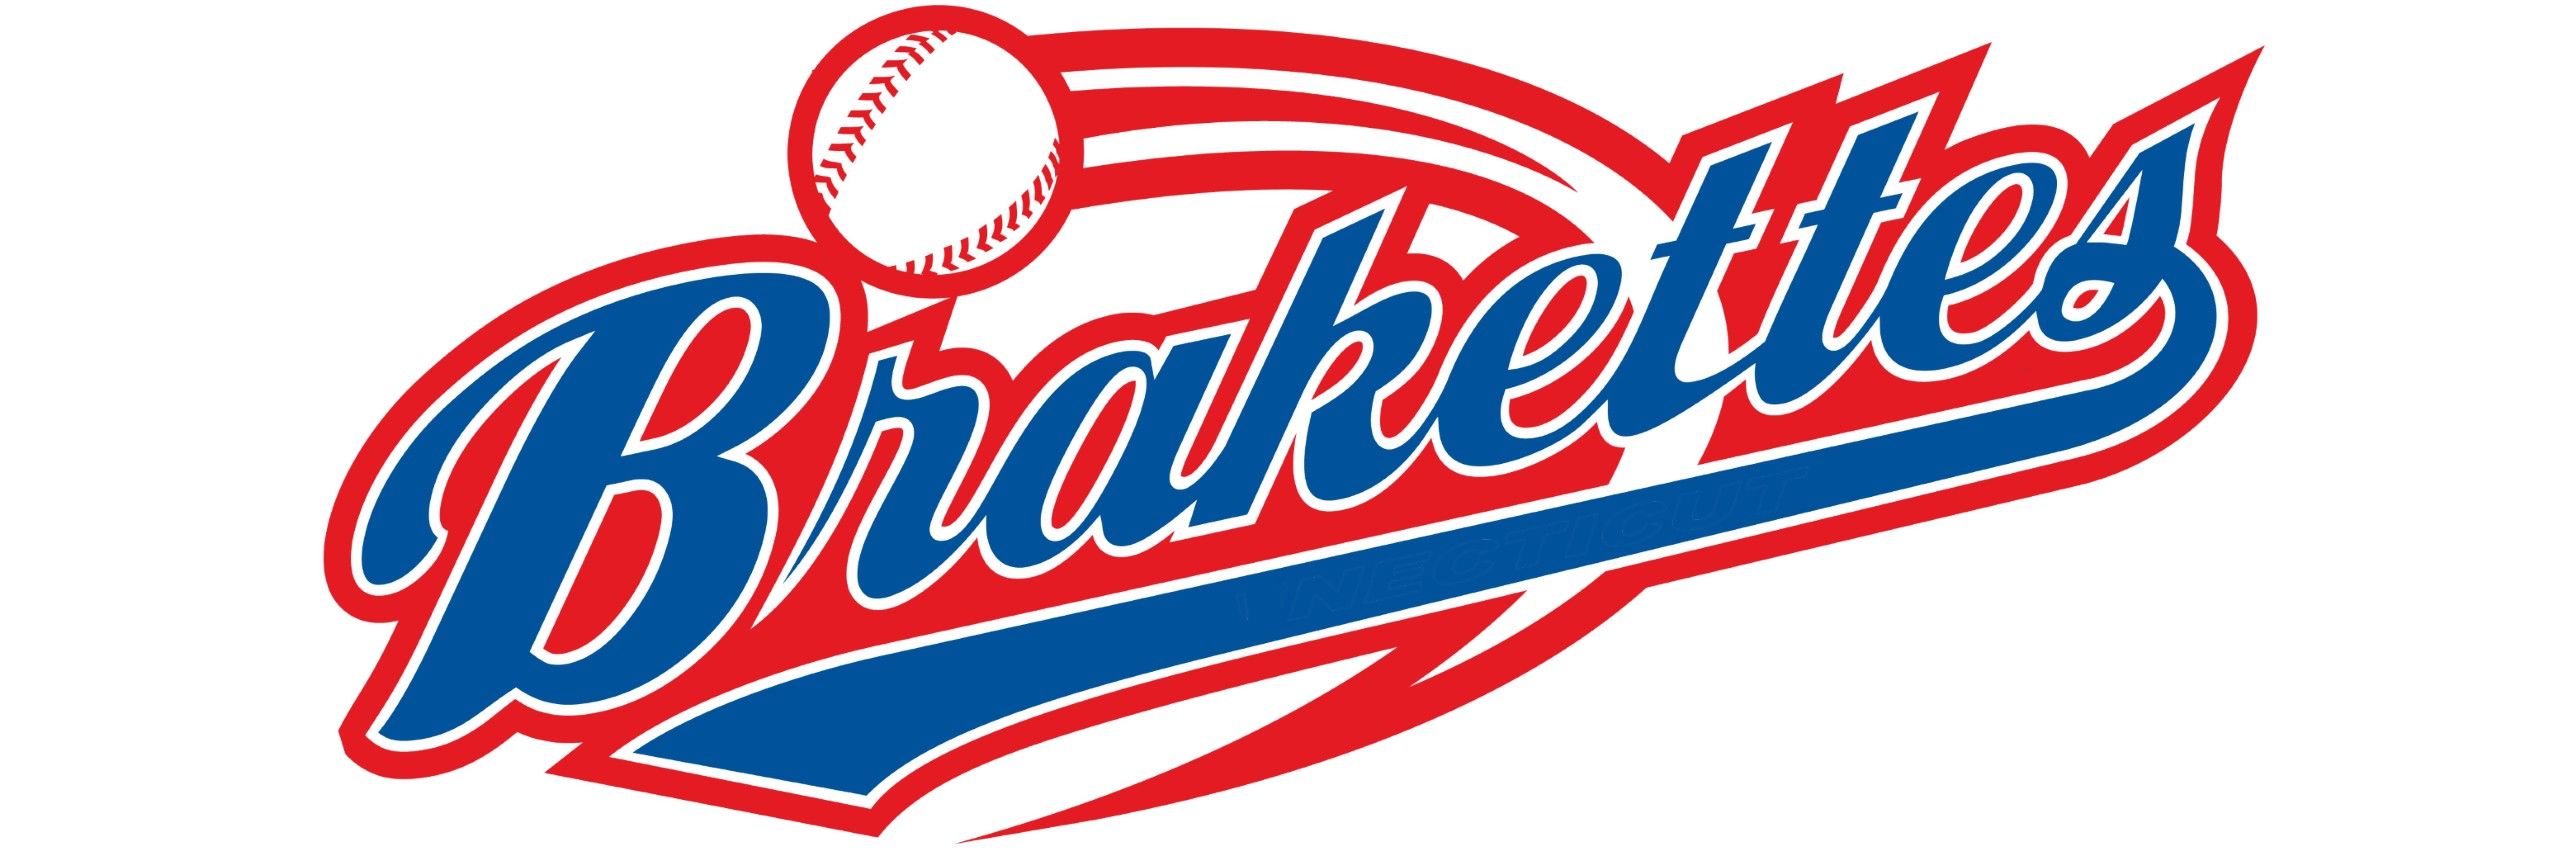 Brakettes Softball